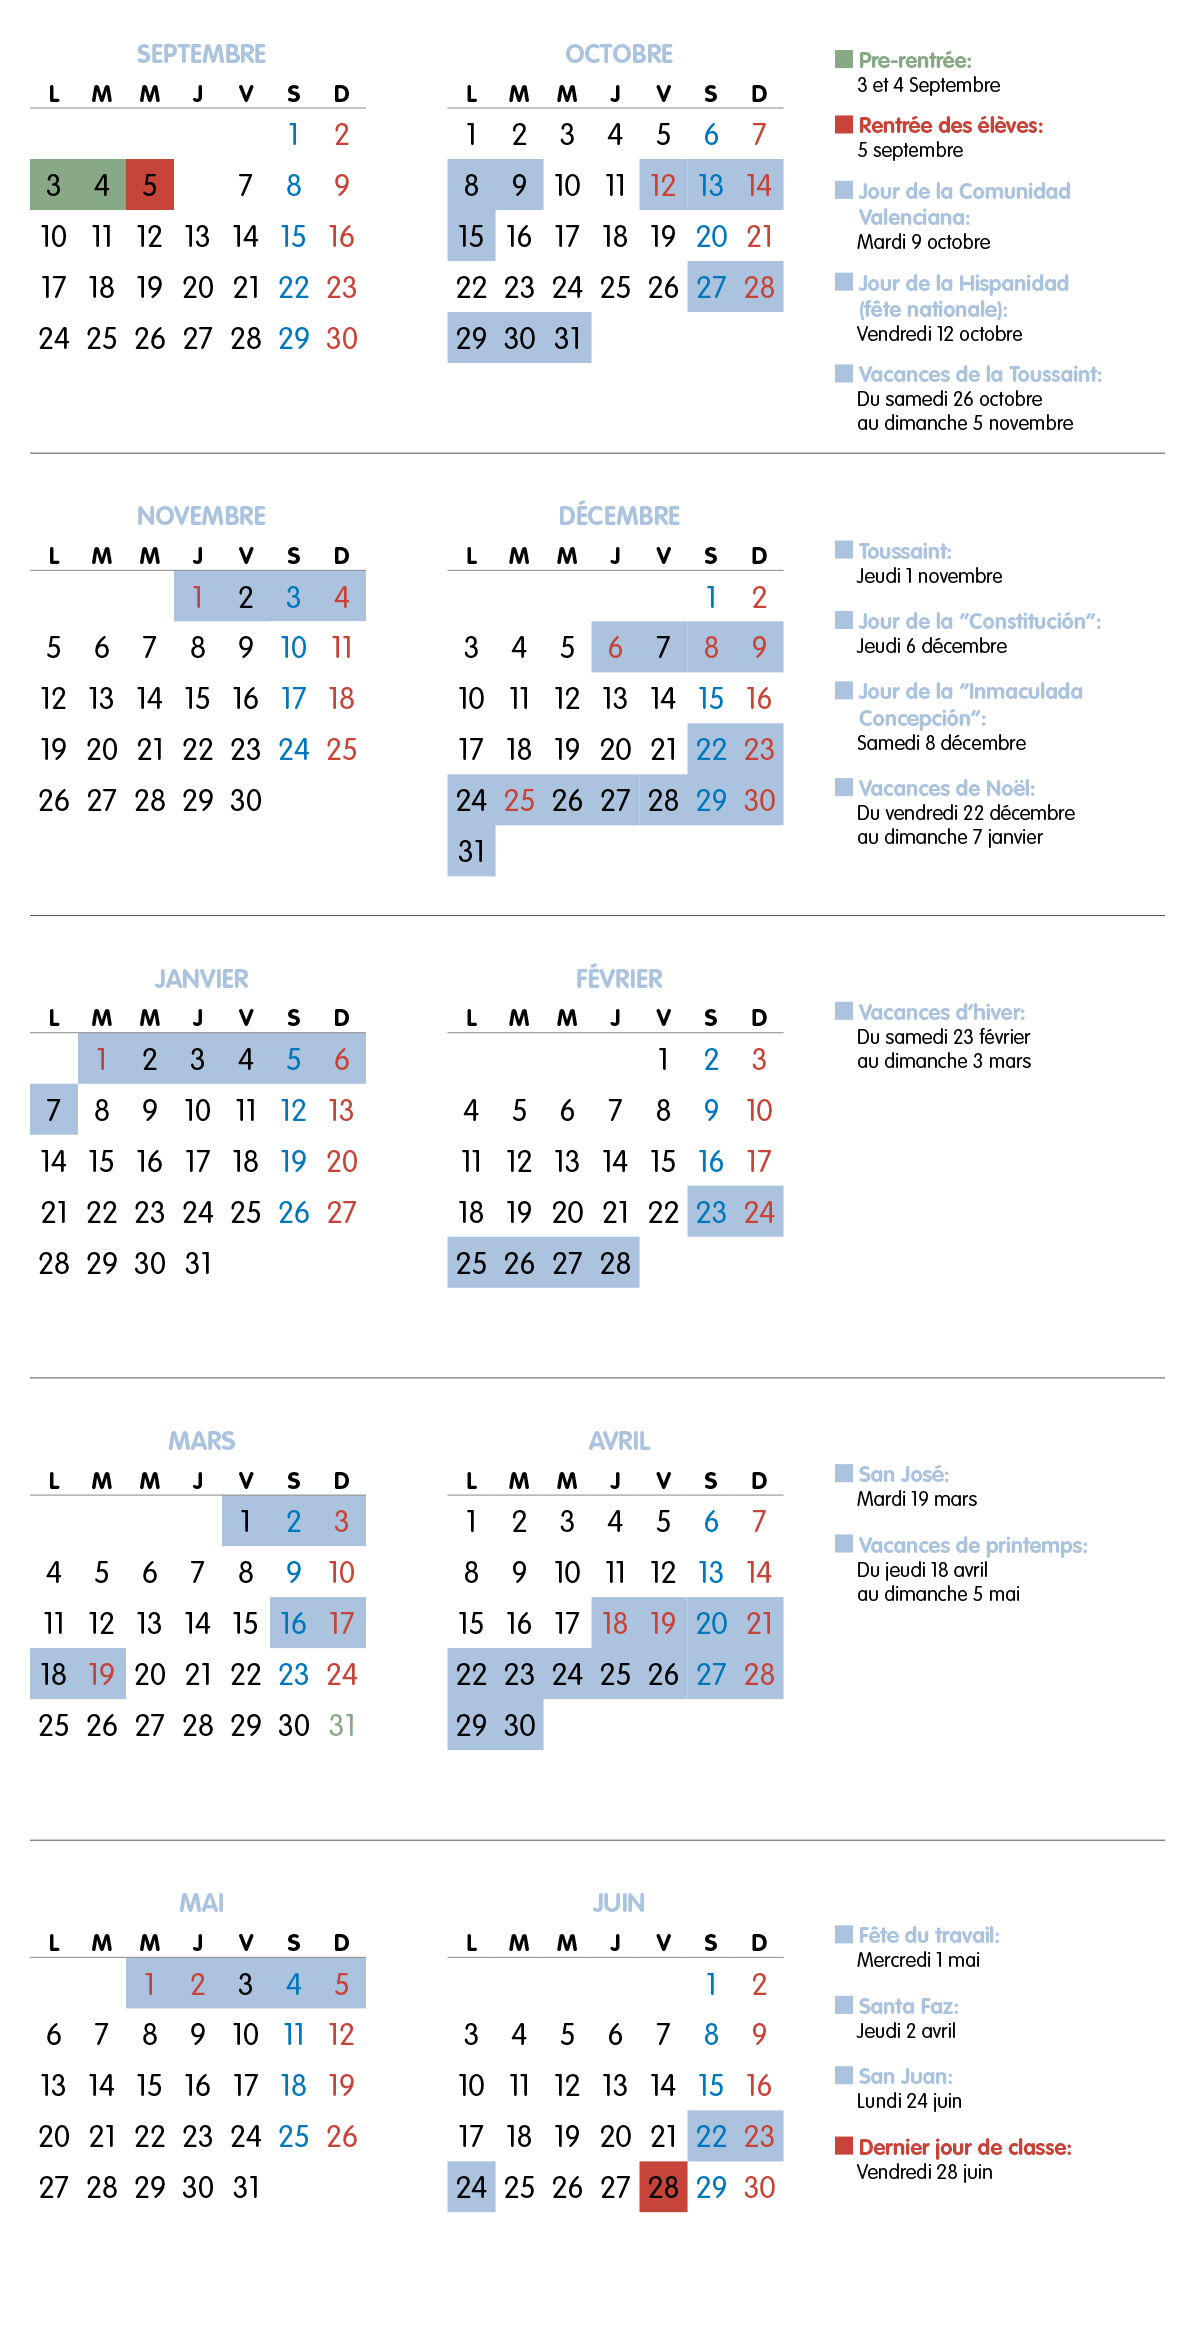 Calendrier Scolaire Liceo